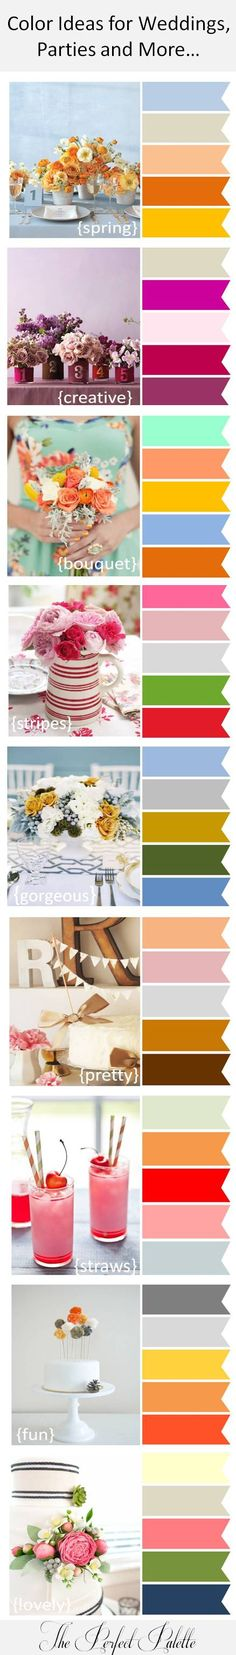 Color Ideas for Weddings, Parties and More...